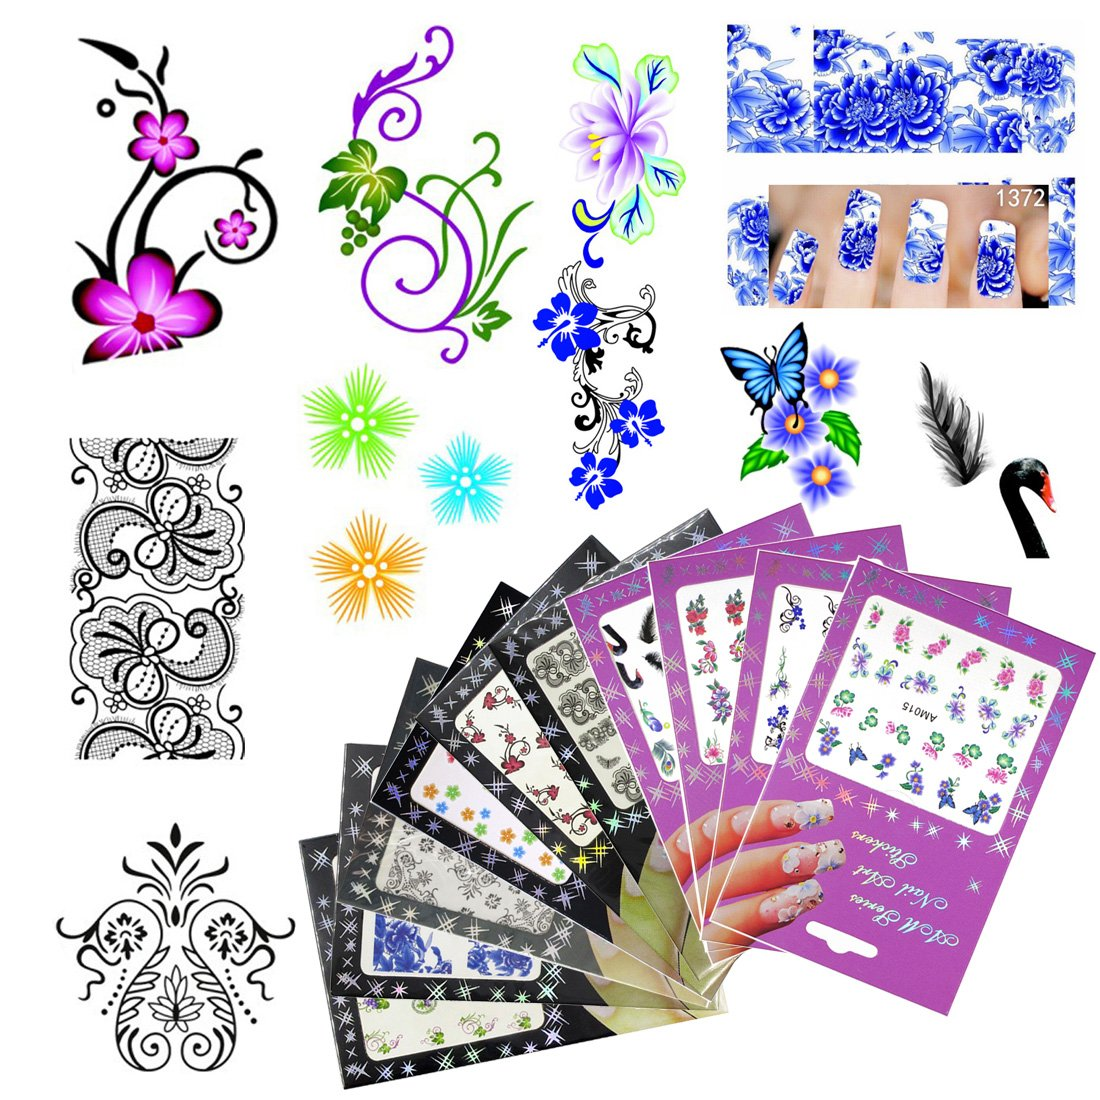 10 Pack Nail Art Sticker Water Decals Foil Adhesive UV Gel Polish Nail Stickers Set Tips Manicure Decoration DIY Accessories (ADDSET1-Style7) Addfavor